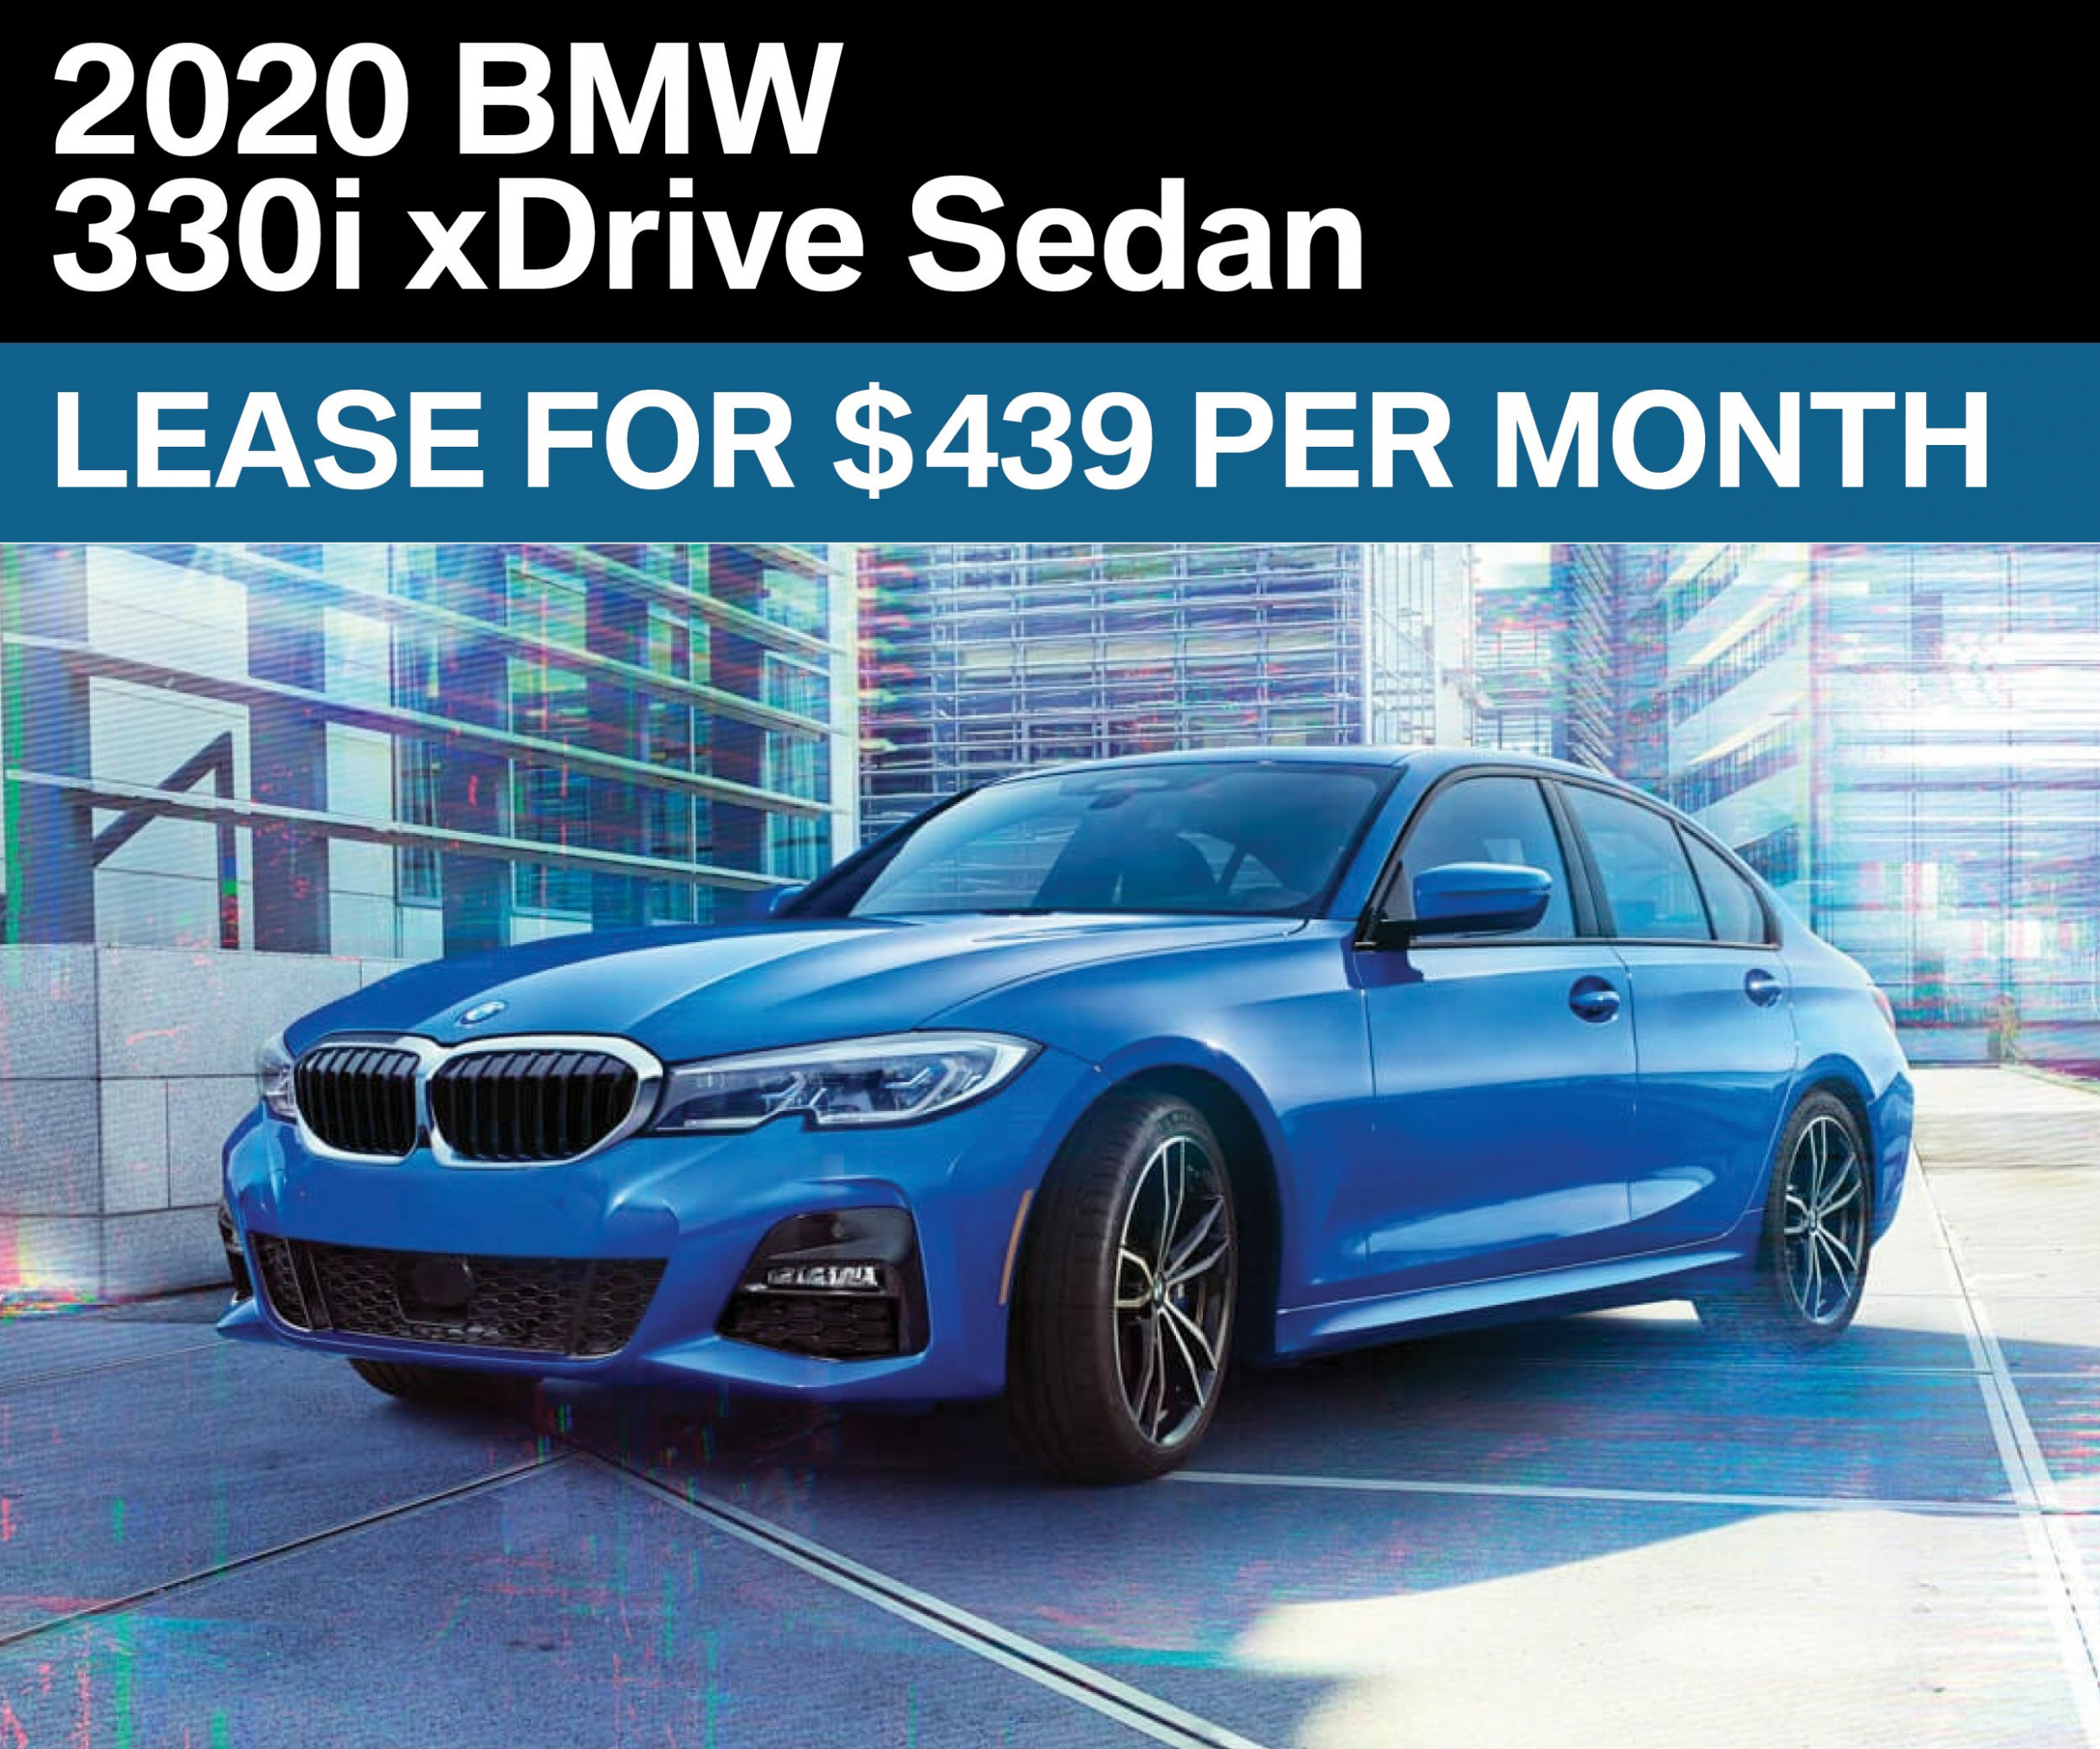 8 BMW 8 Series 880i | Passport BMW Specials Suitland, MD